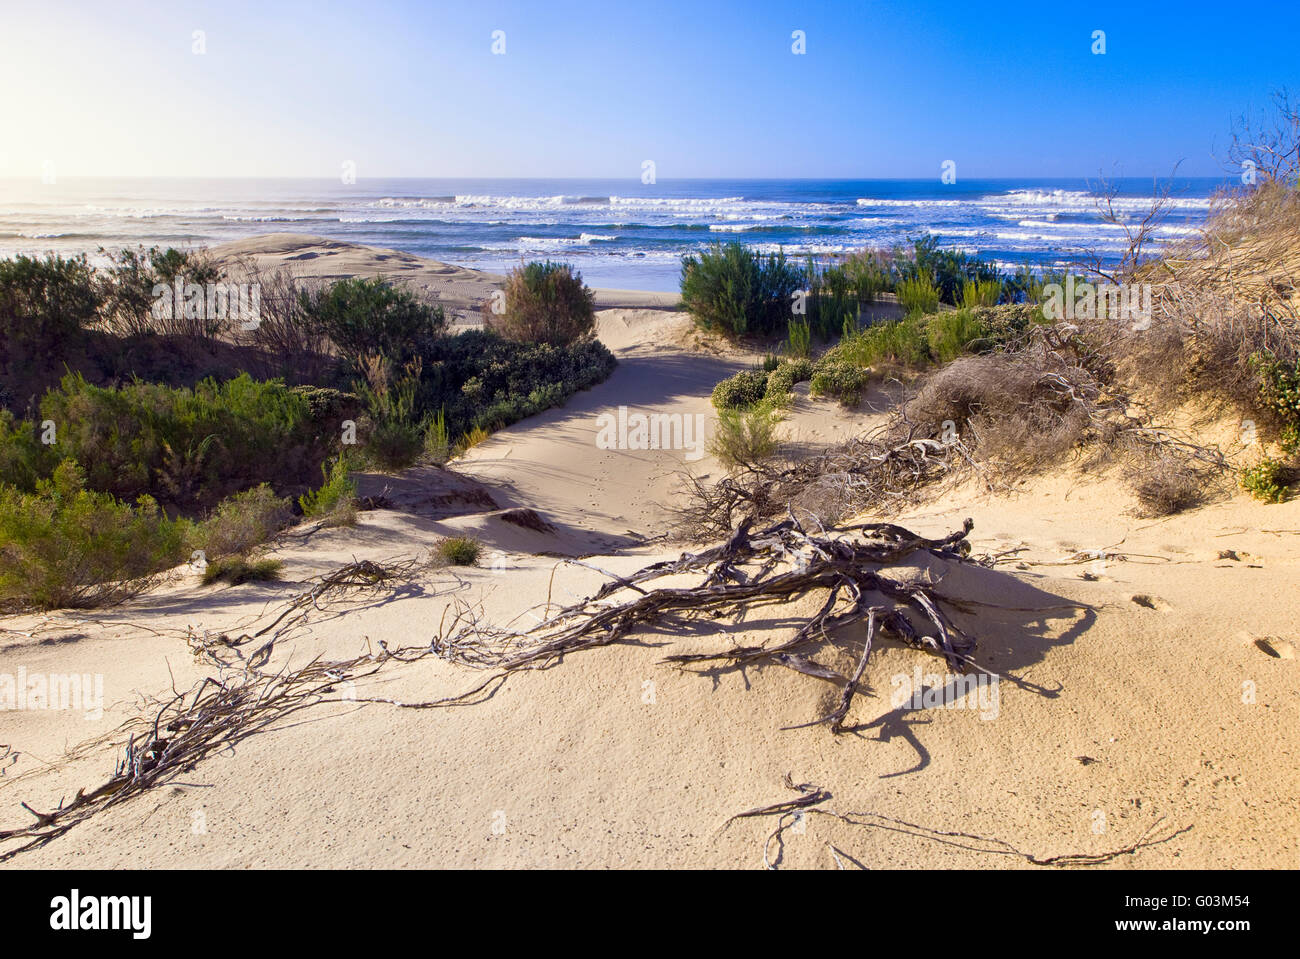 A typical sand dune and coastal vegetation of the Eastern Cape Coast in South Africa - Stock Image